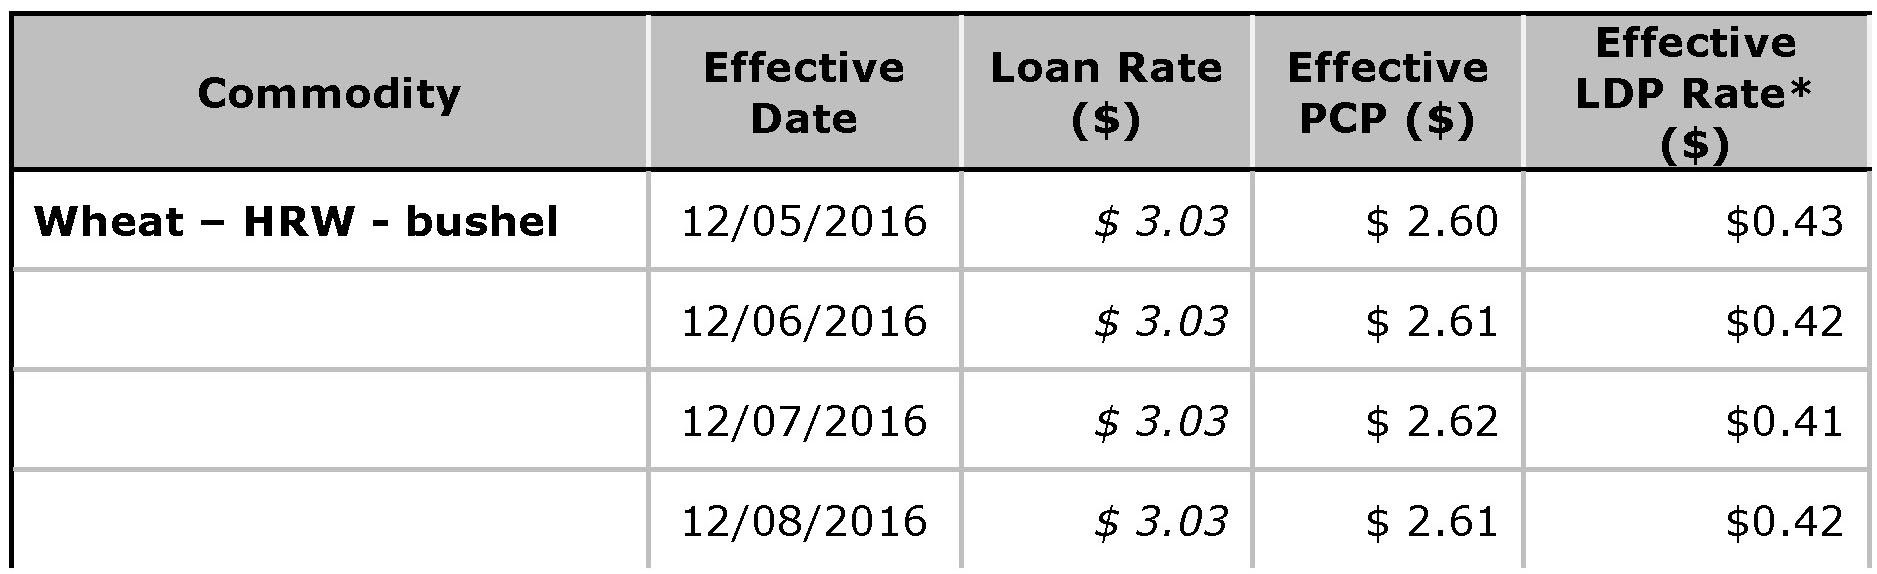 USDA Loan Deficiency Payment - December 9, 2016 - wheat